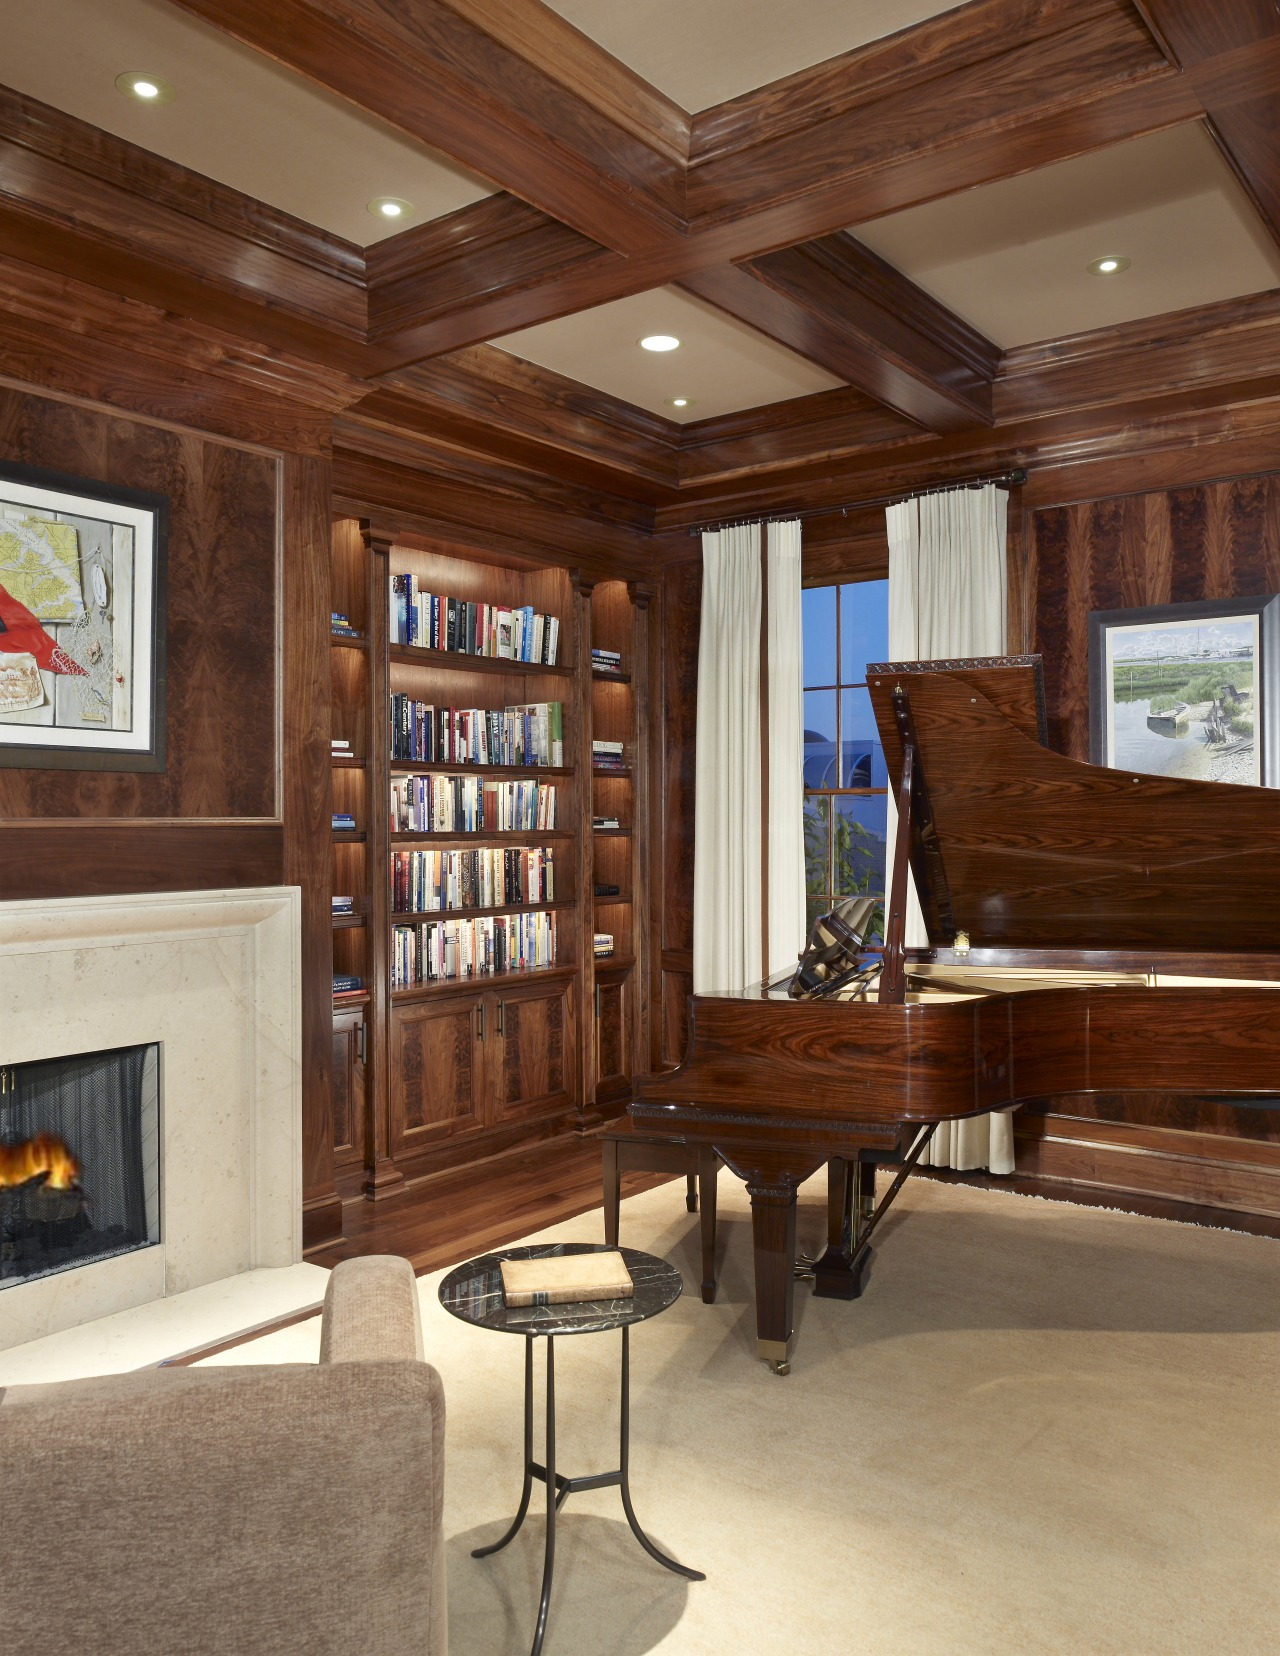 This house was remodeled by architect Ankie Barnes cabinetry, ceiling, flooring, furniture, hardwood, interior design, living room, wood, wood stain, brown